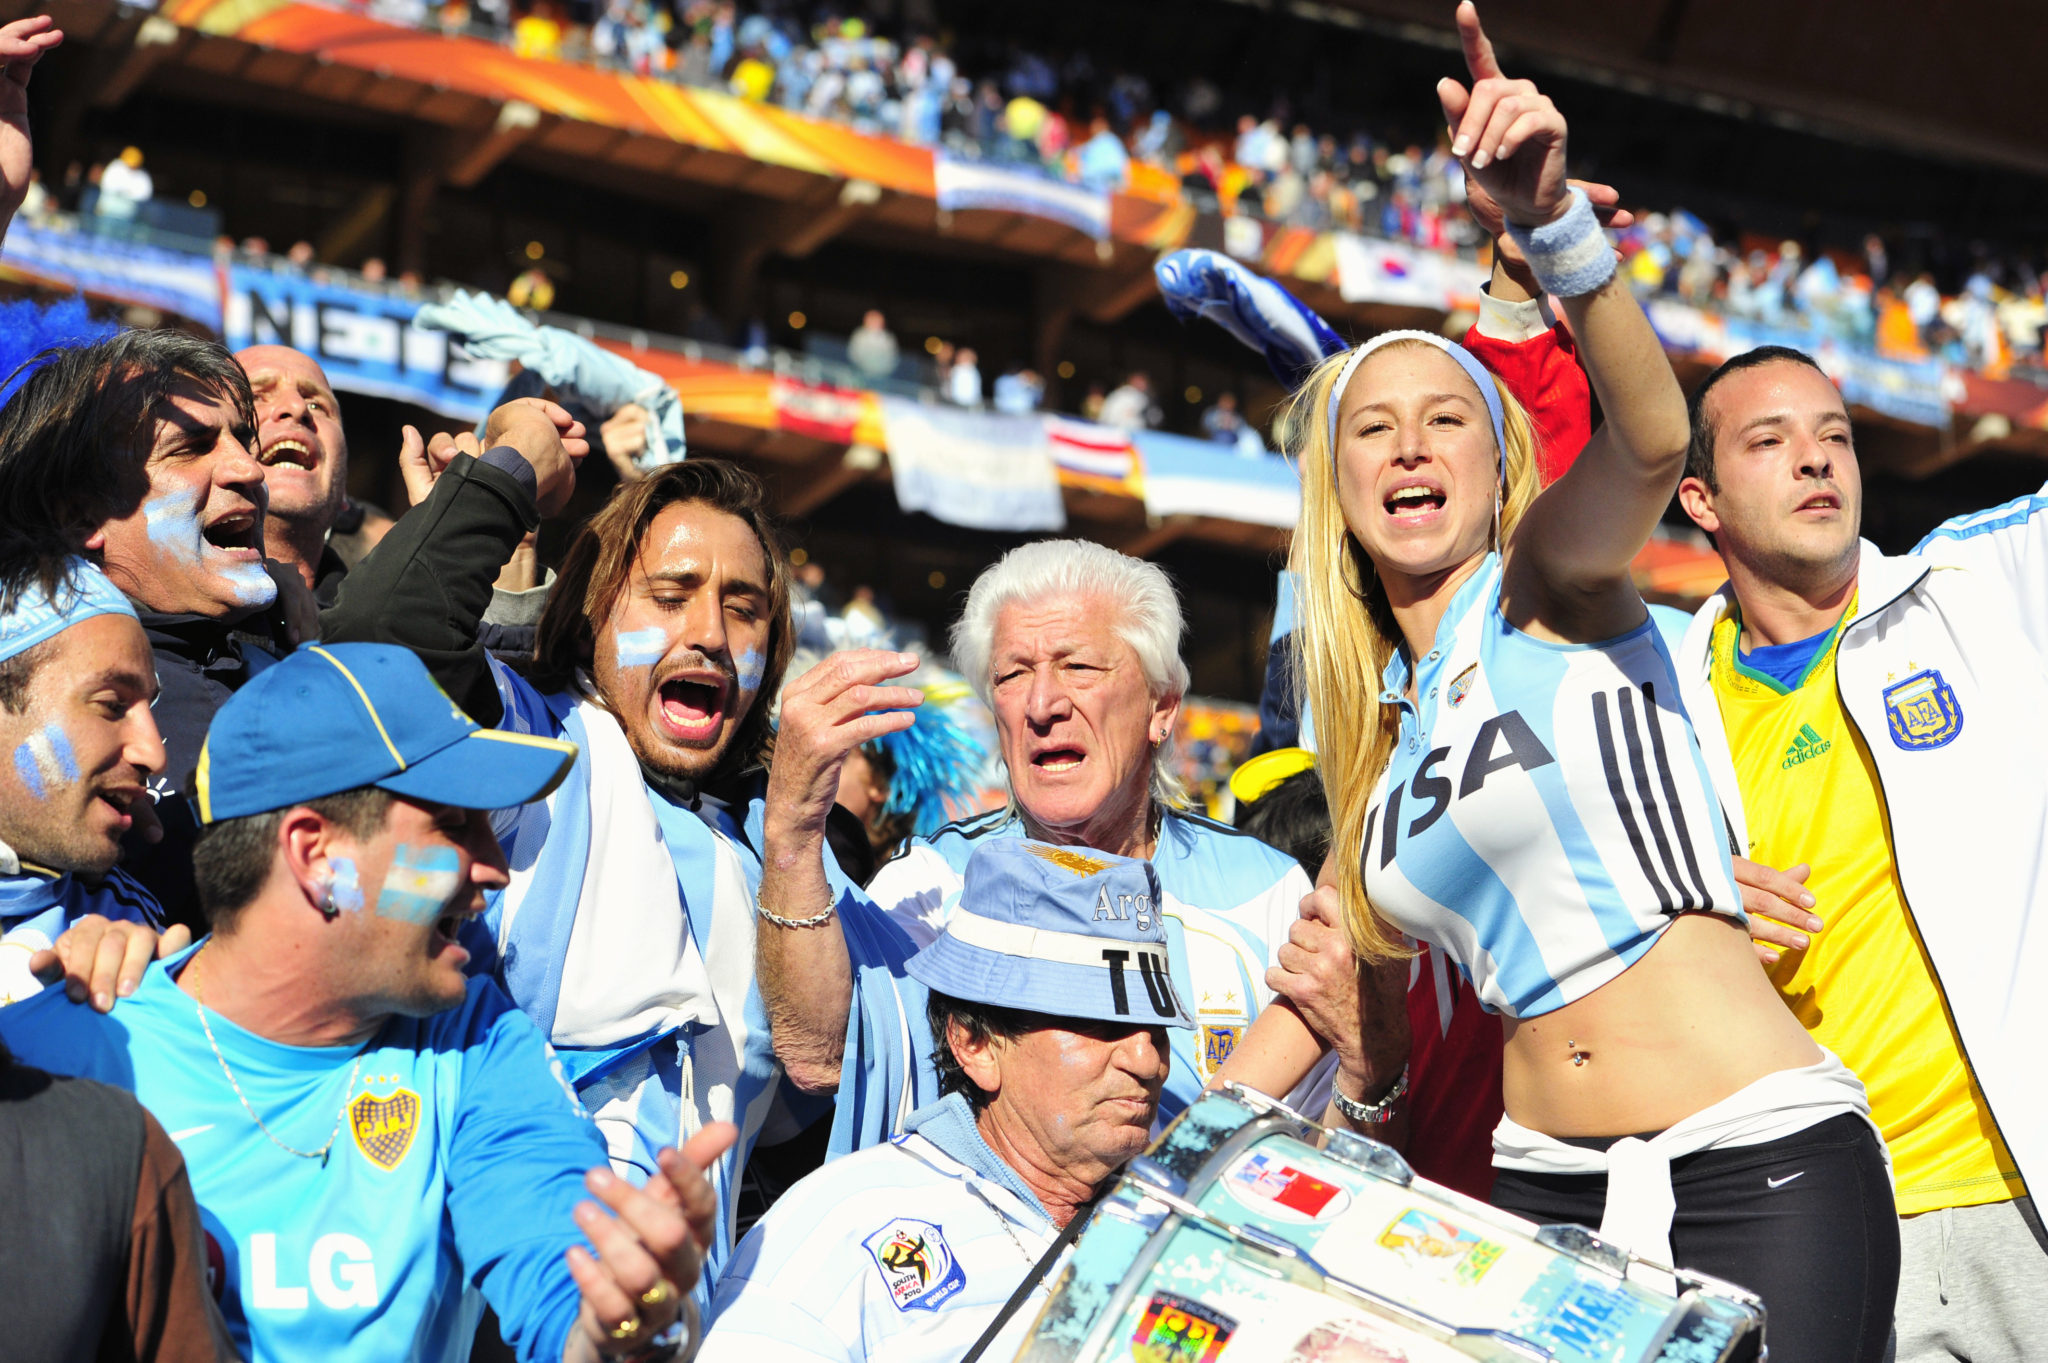 17 June 2010, Argentine clebrate after the 2010 Fifa World Cup game at the Soccer City stadium in Johannesburg. Argentina won the game 4-0. Picture: Shayne Robinson